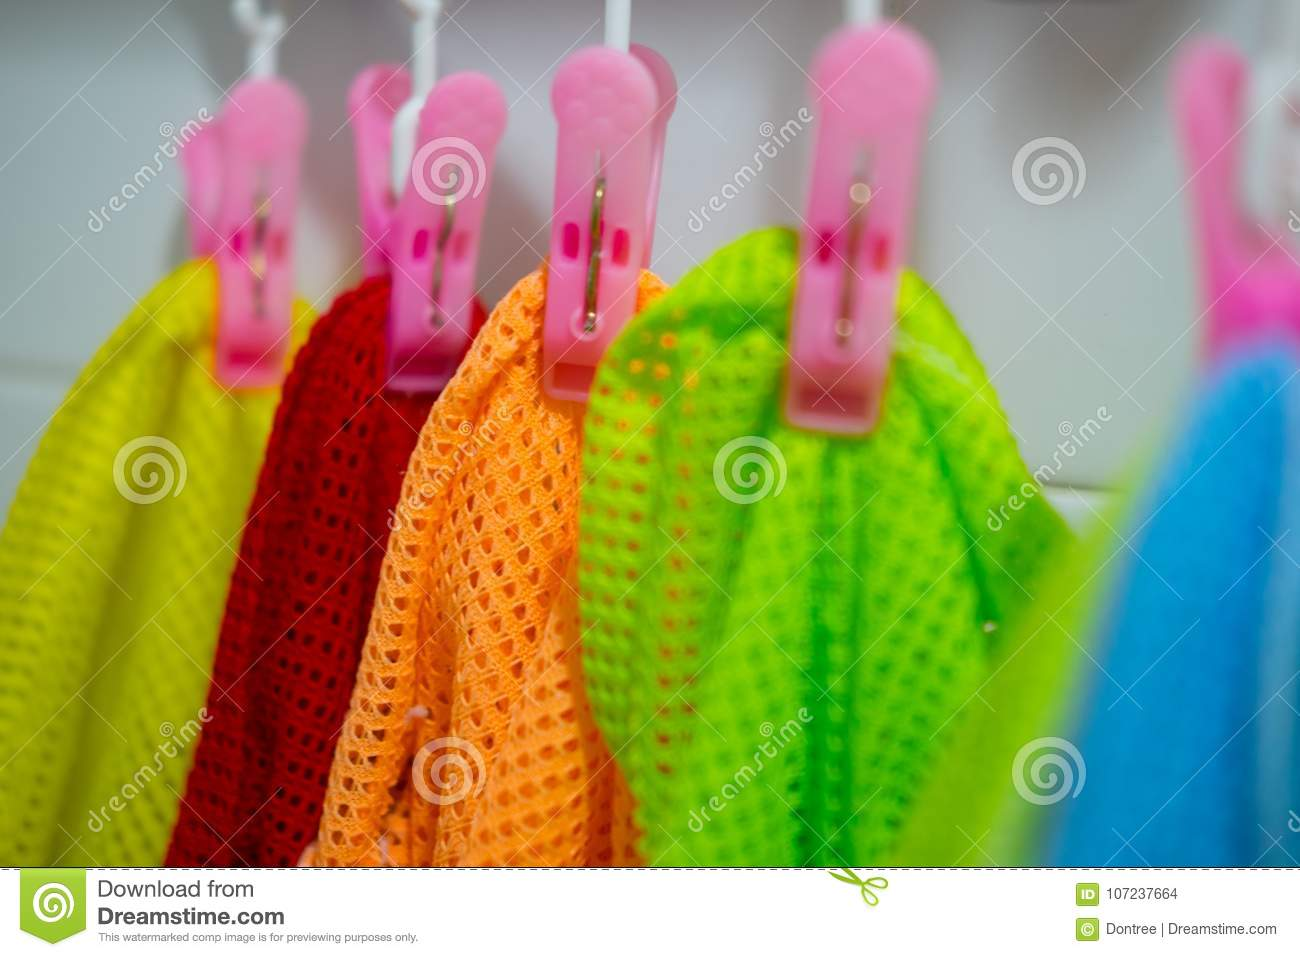 e0f07adc9 Colorful Baby Kids Clothes Hanging On Clothesline Stock Photo ...